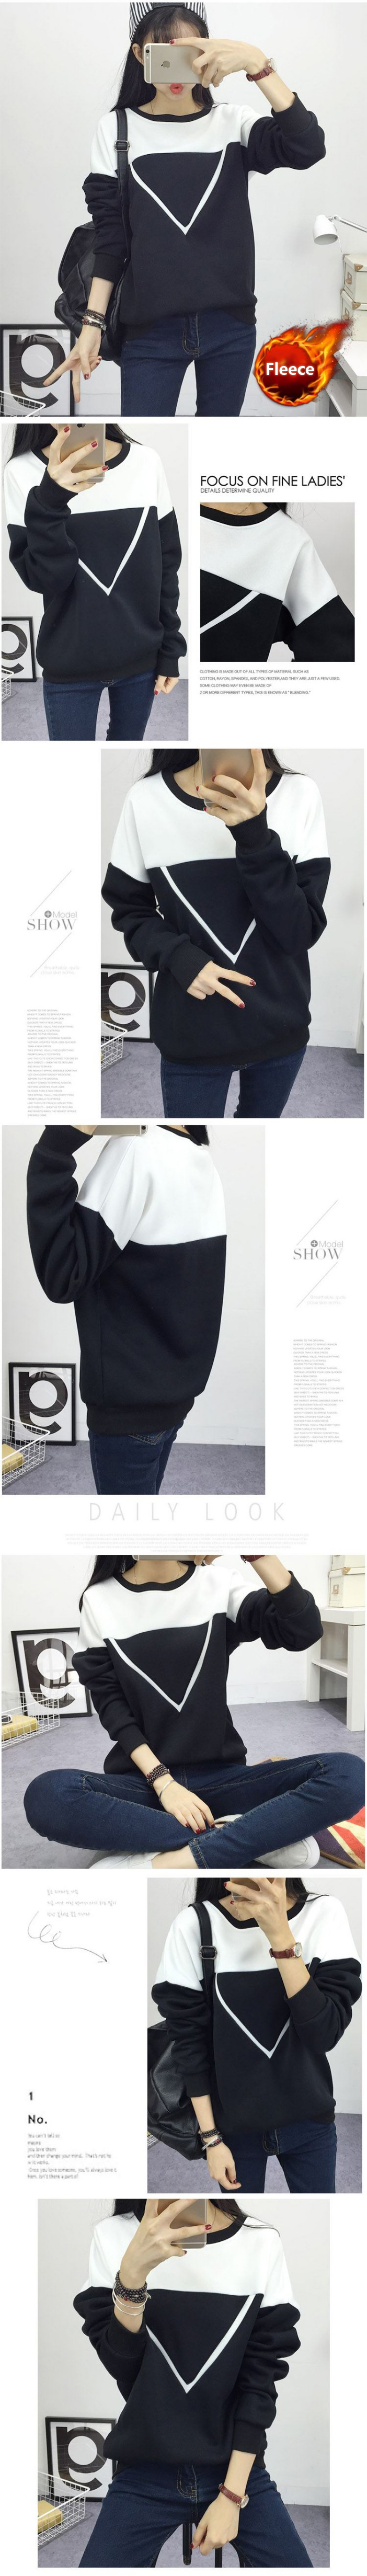 HTB1BatBjyCYBuNkHFCcq6AHtVXa3 - Winter New Fashion Black and White Spell Color Patchwork Hoodies Women V Pattern Pullover Sweatshirt Female Tracksuit M-XXL